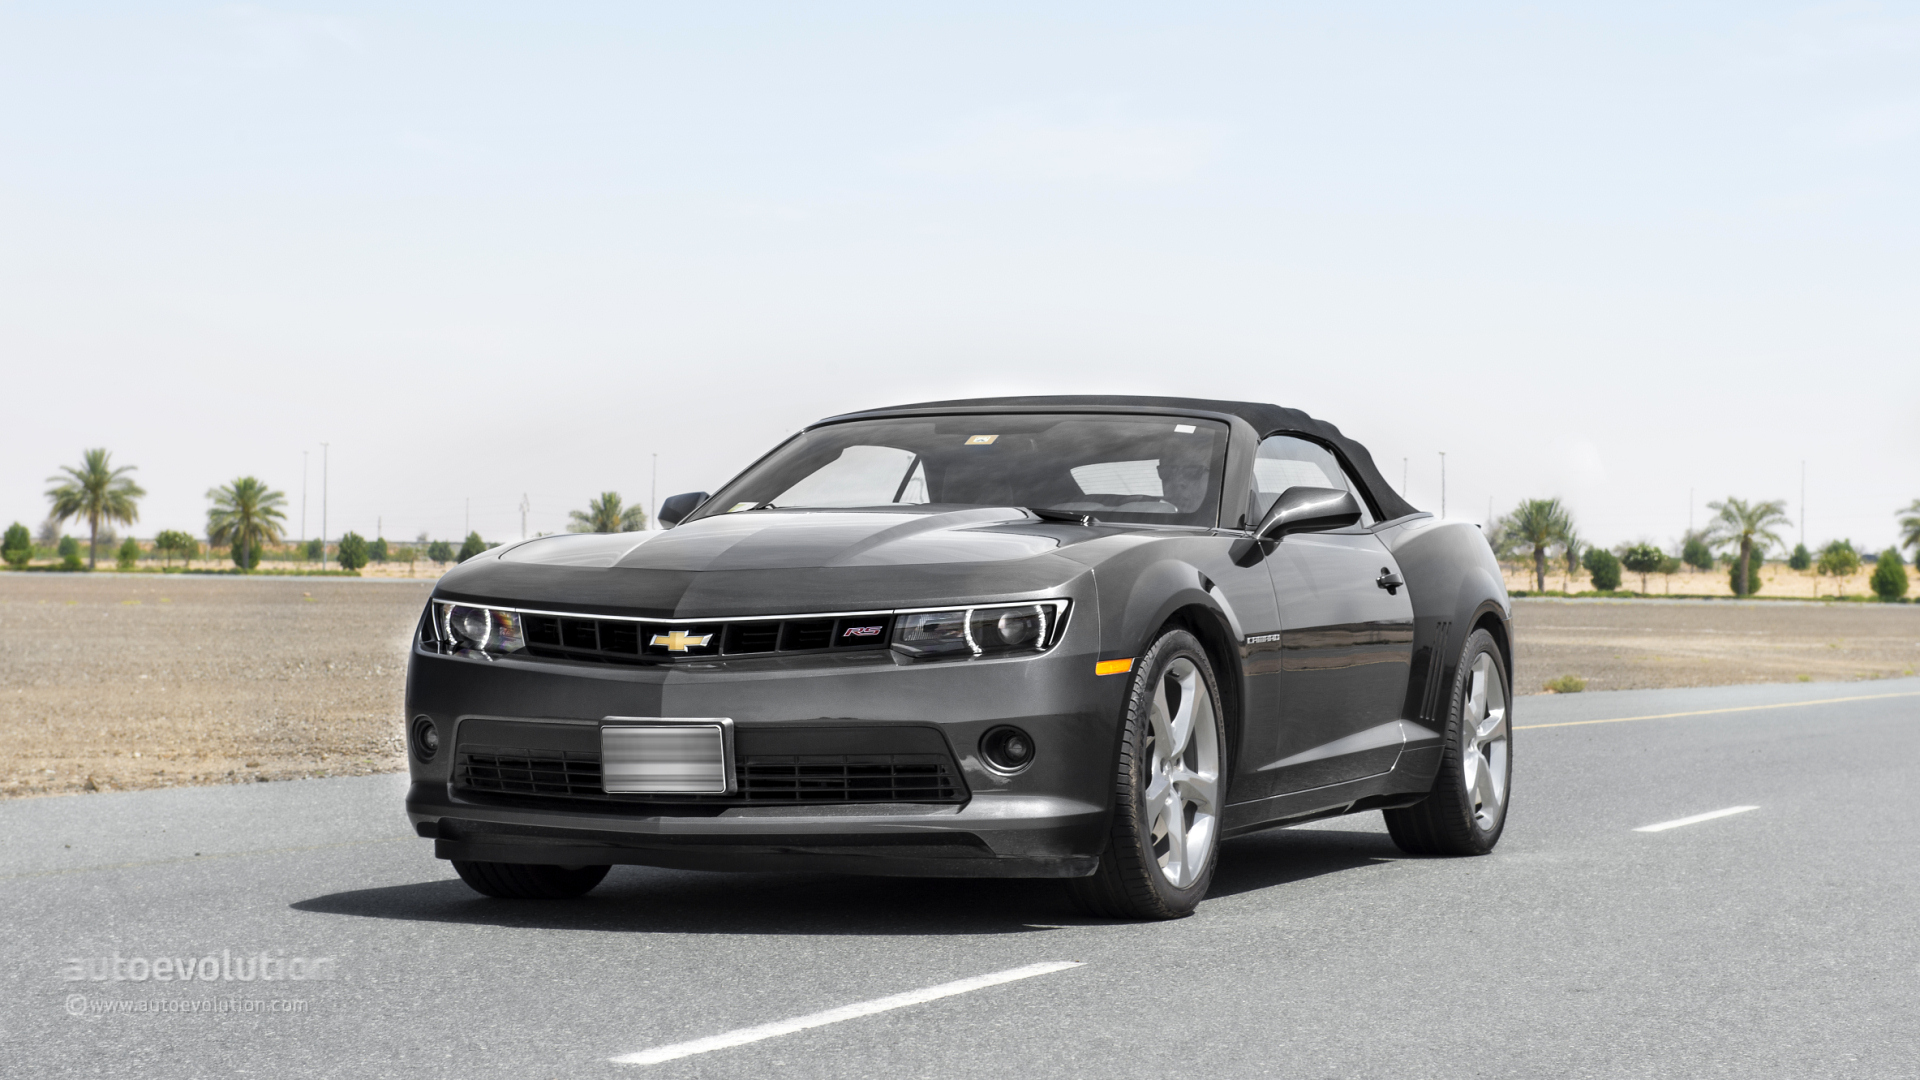 2014 chevrolet camaro rs convertible review autoevolution. Cars Review. Best American Auto & Cars Review